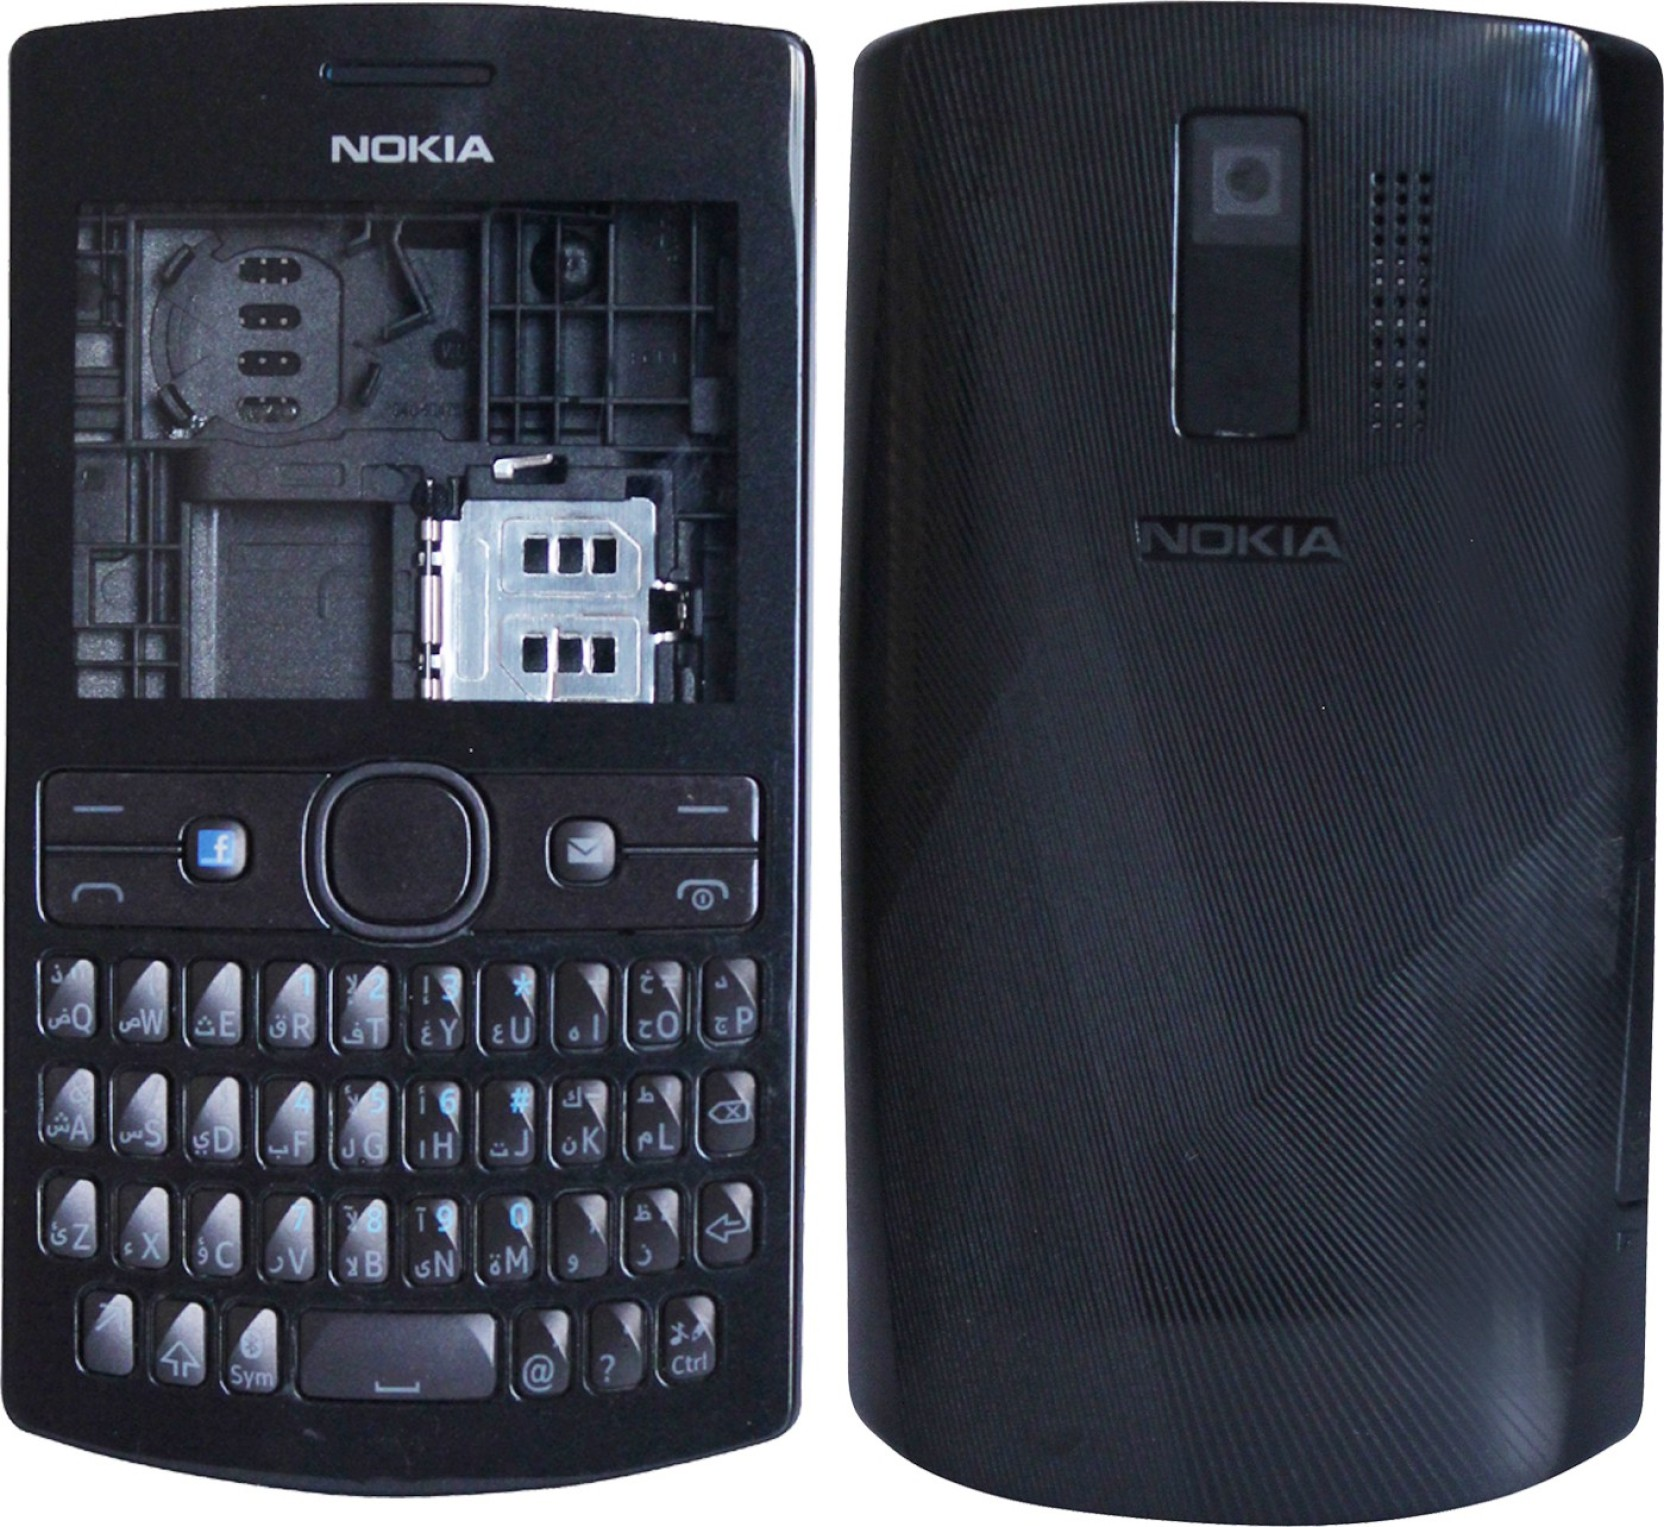 Emrse Nokia Asha 205 Replacement Body Housing Front Back Panel 501 Dual Sim Resmi Bright Red Share